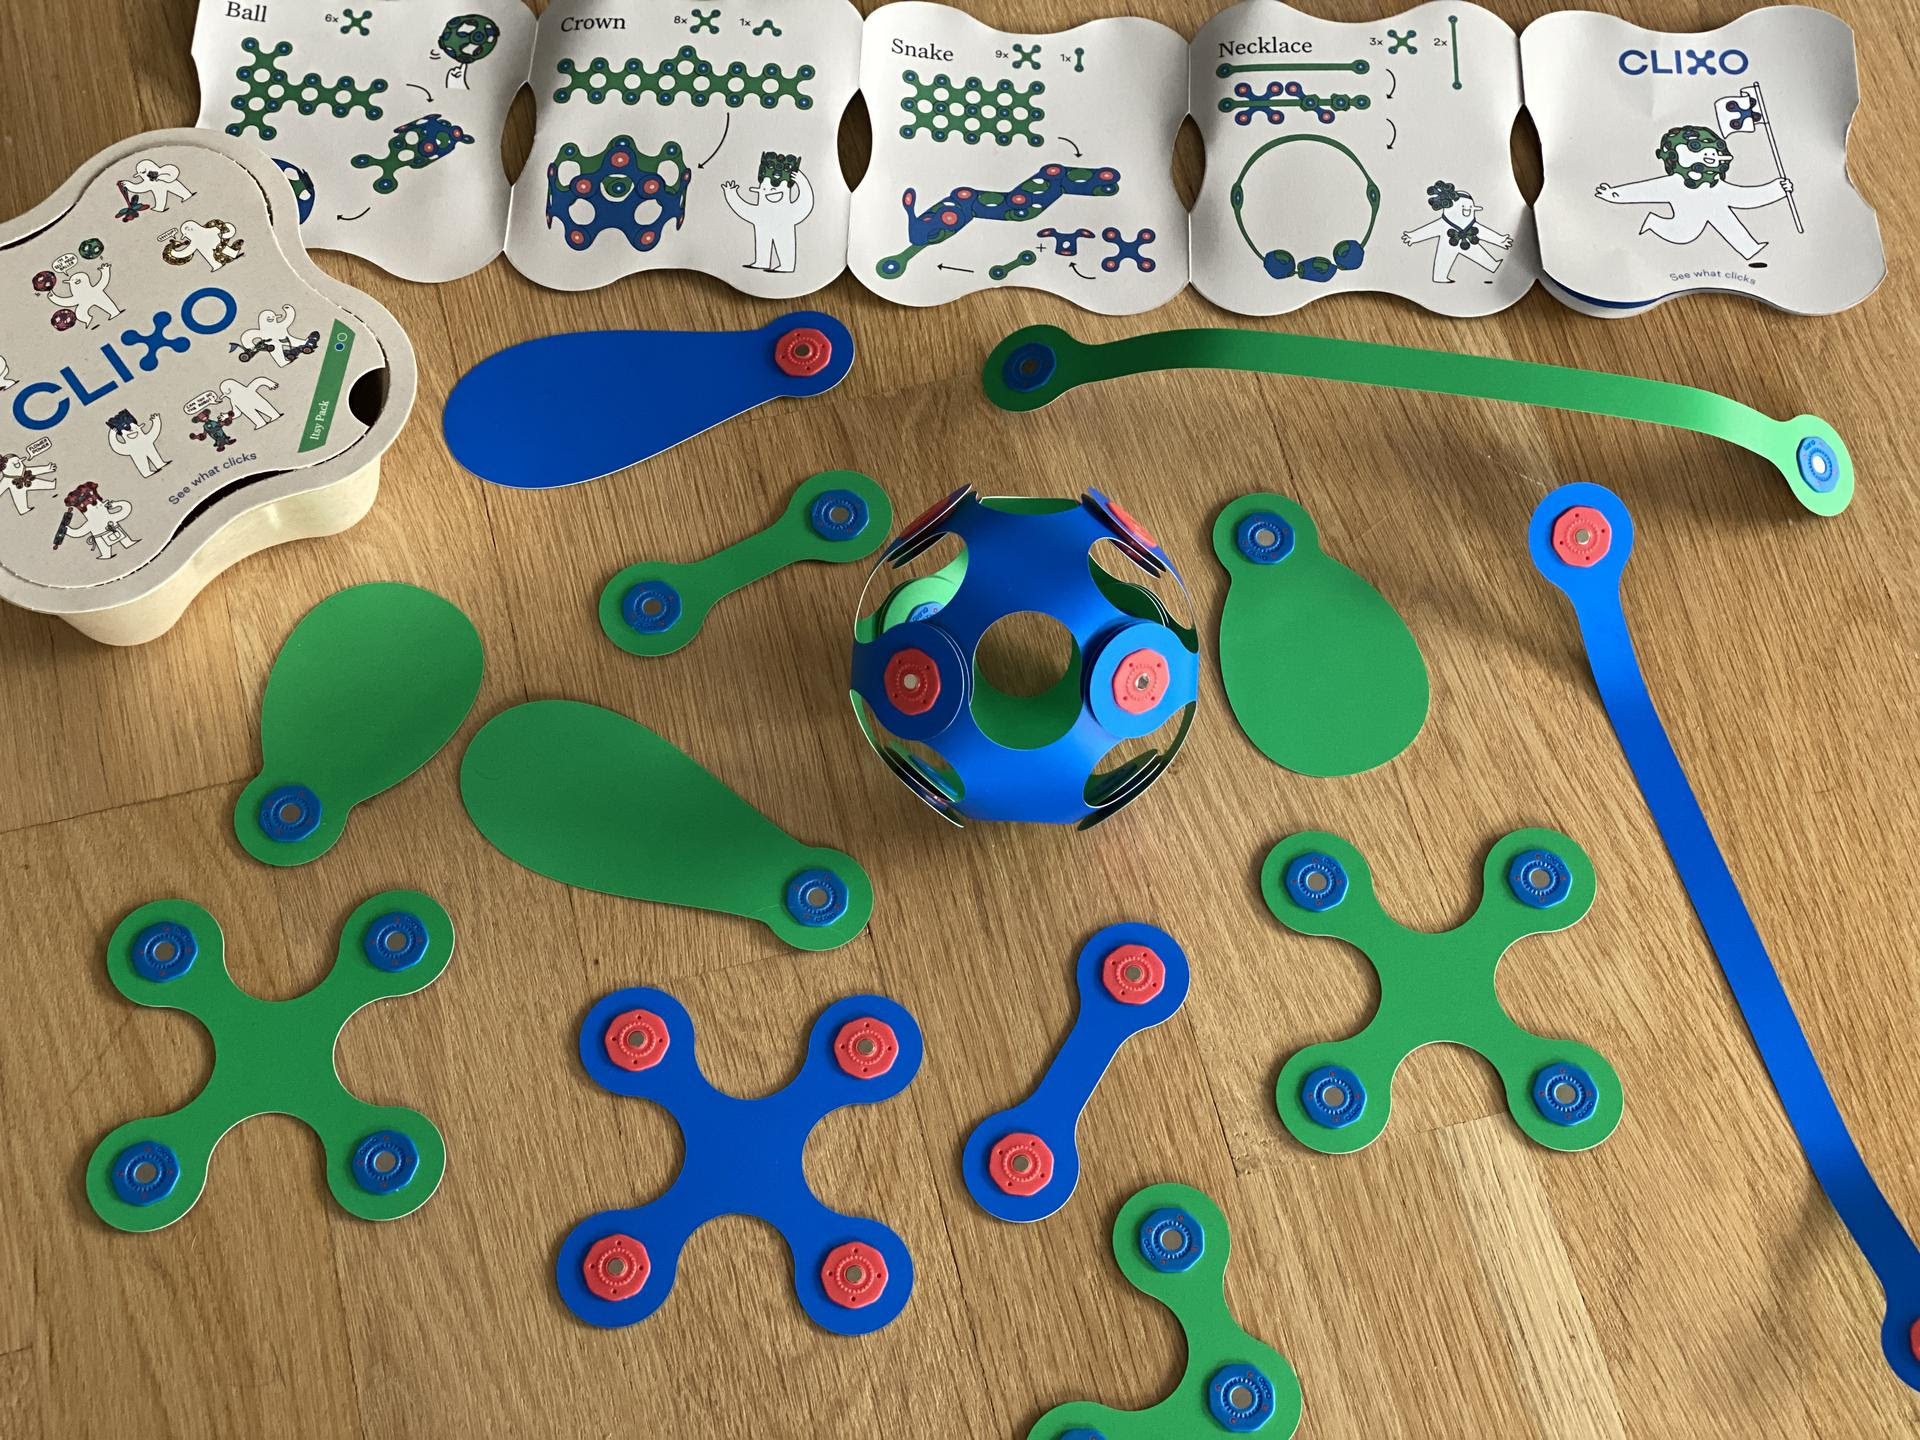 the flexible plastic and magnetic toys, some stuck together and gently bent to form a sphere